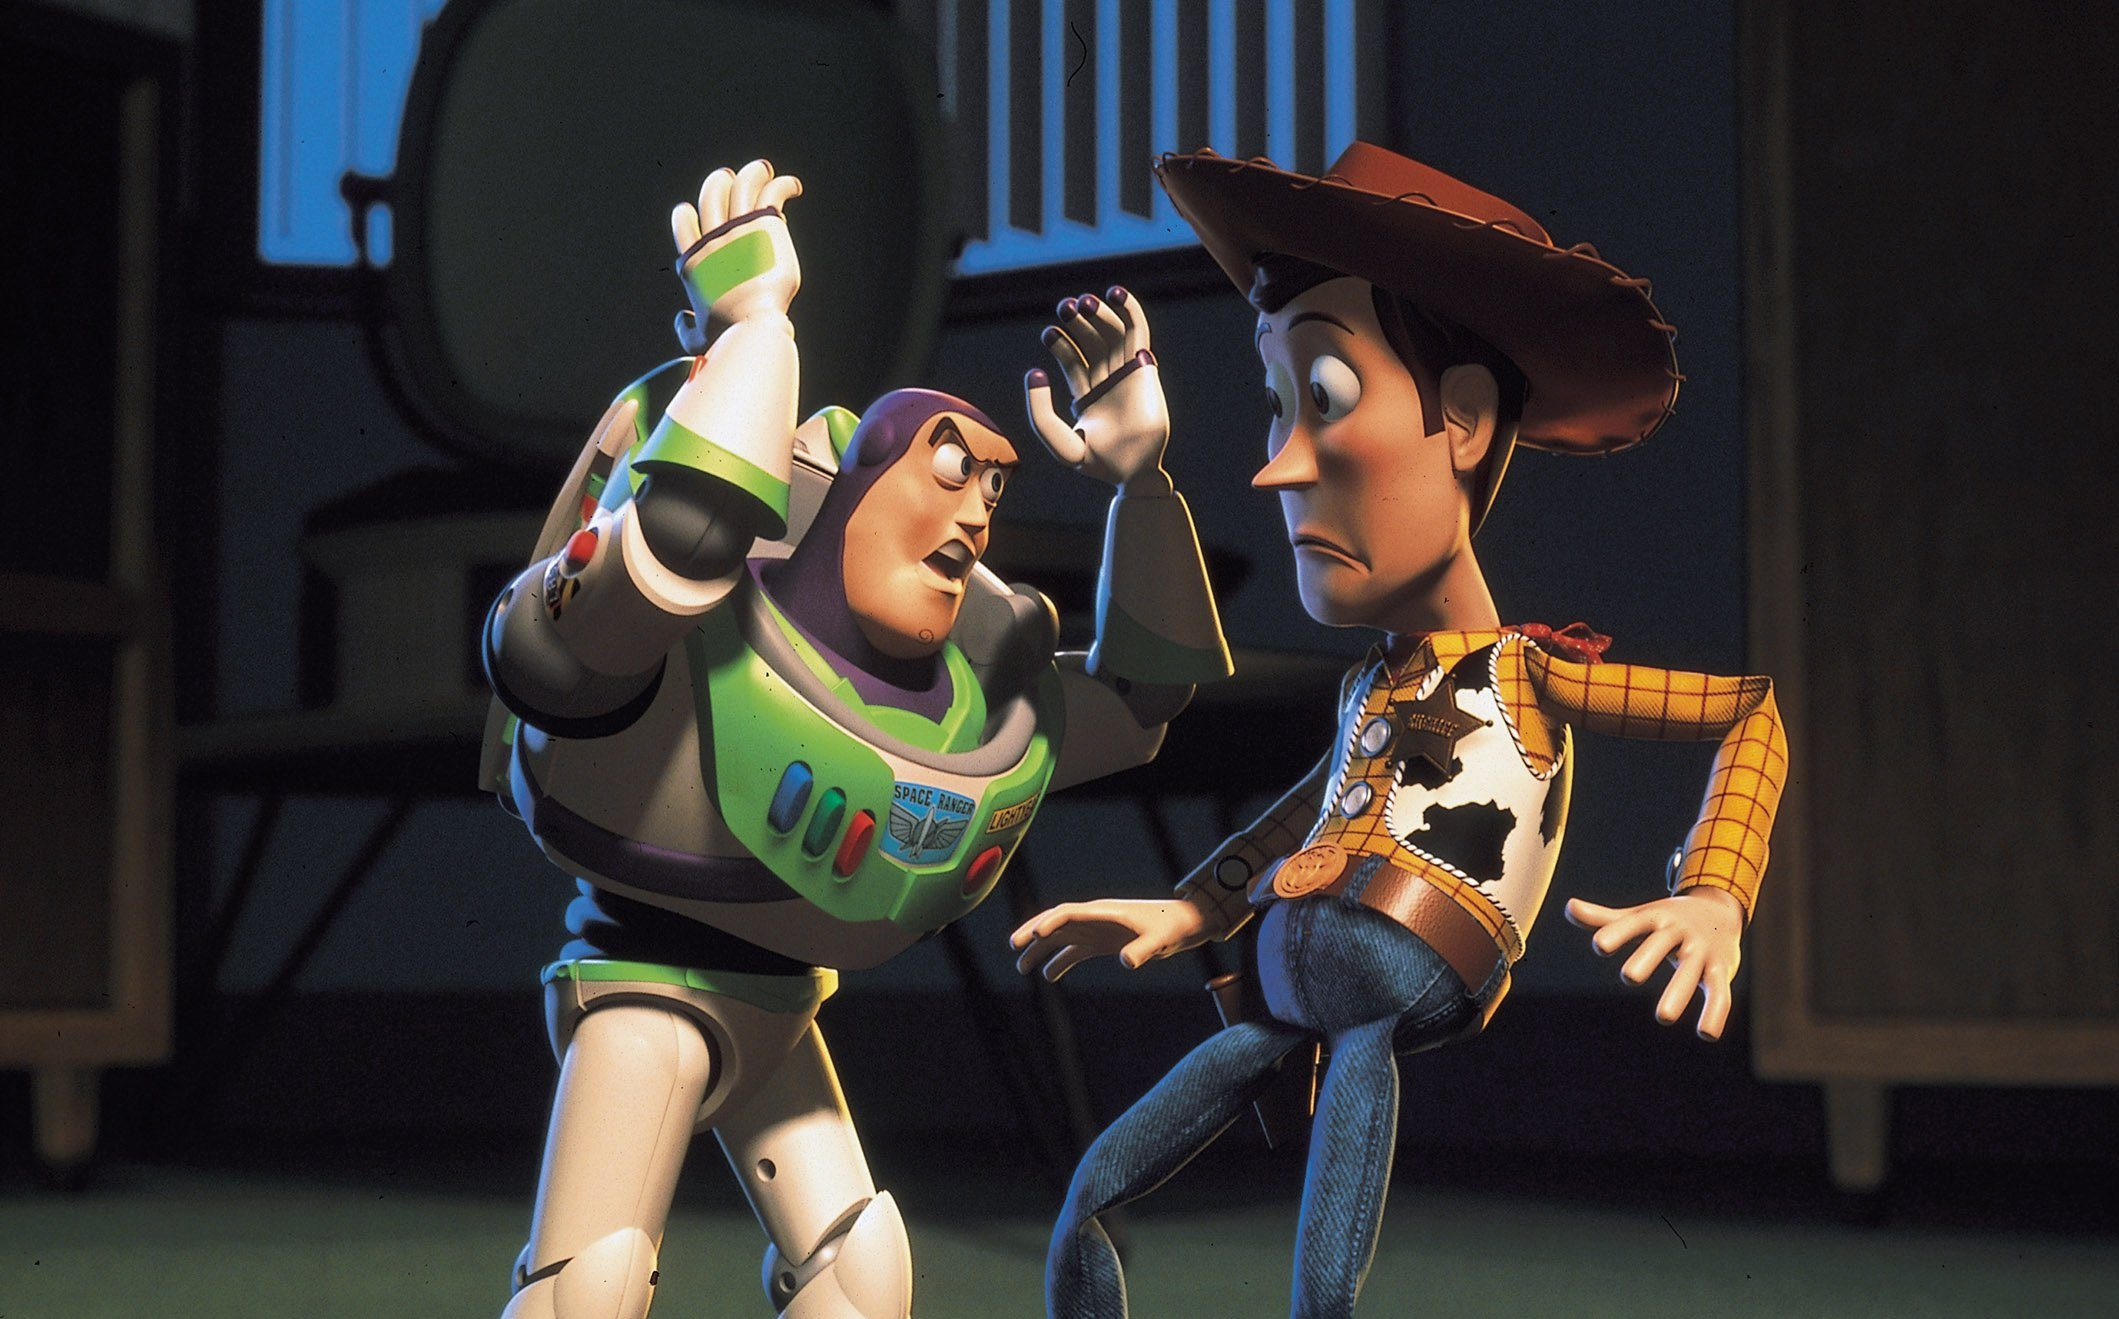 QUALITY: 2ND GENERATION--FILM 'TOY STORY II' FOR FURTHER INFORMATION CONTACT THE BUENA VISTA PRESS OFFICE ON TEL: 0181 222 16532828/1221 FAX: 0181 222 2494